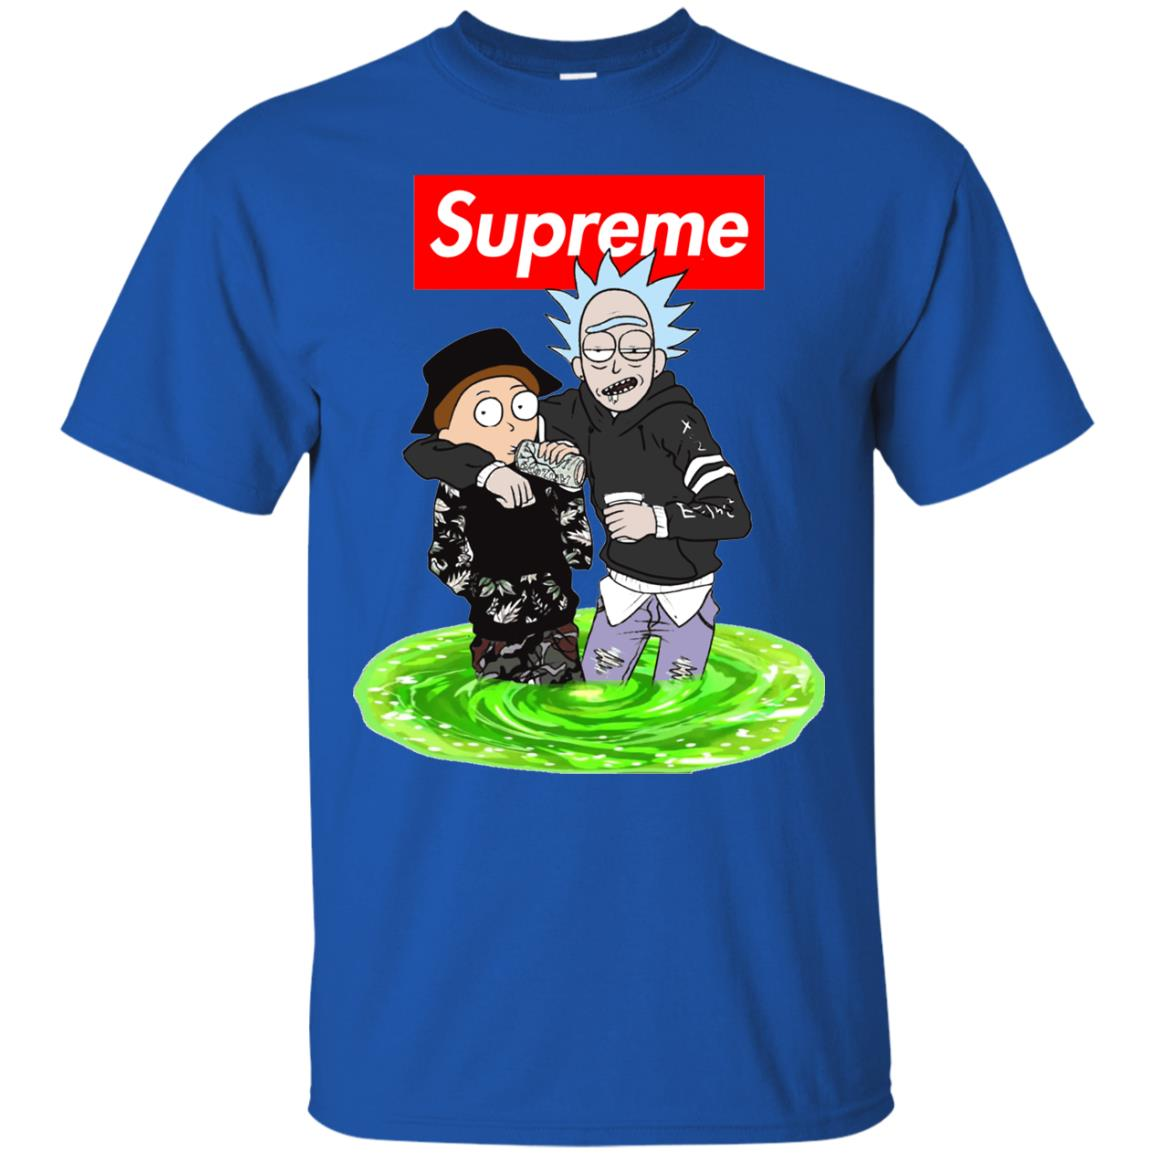 image 2741 - Supreme style Rick and Morty shirt & sweater